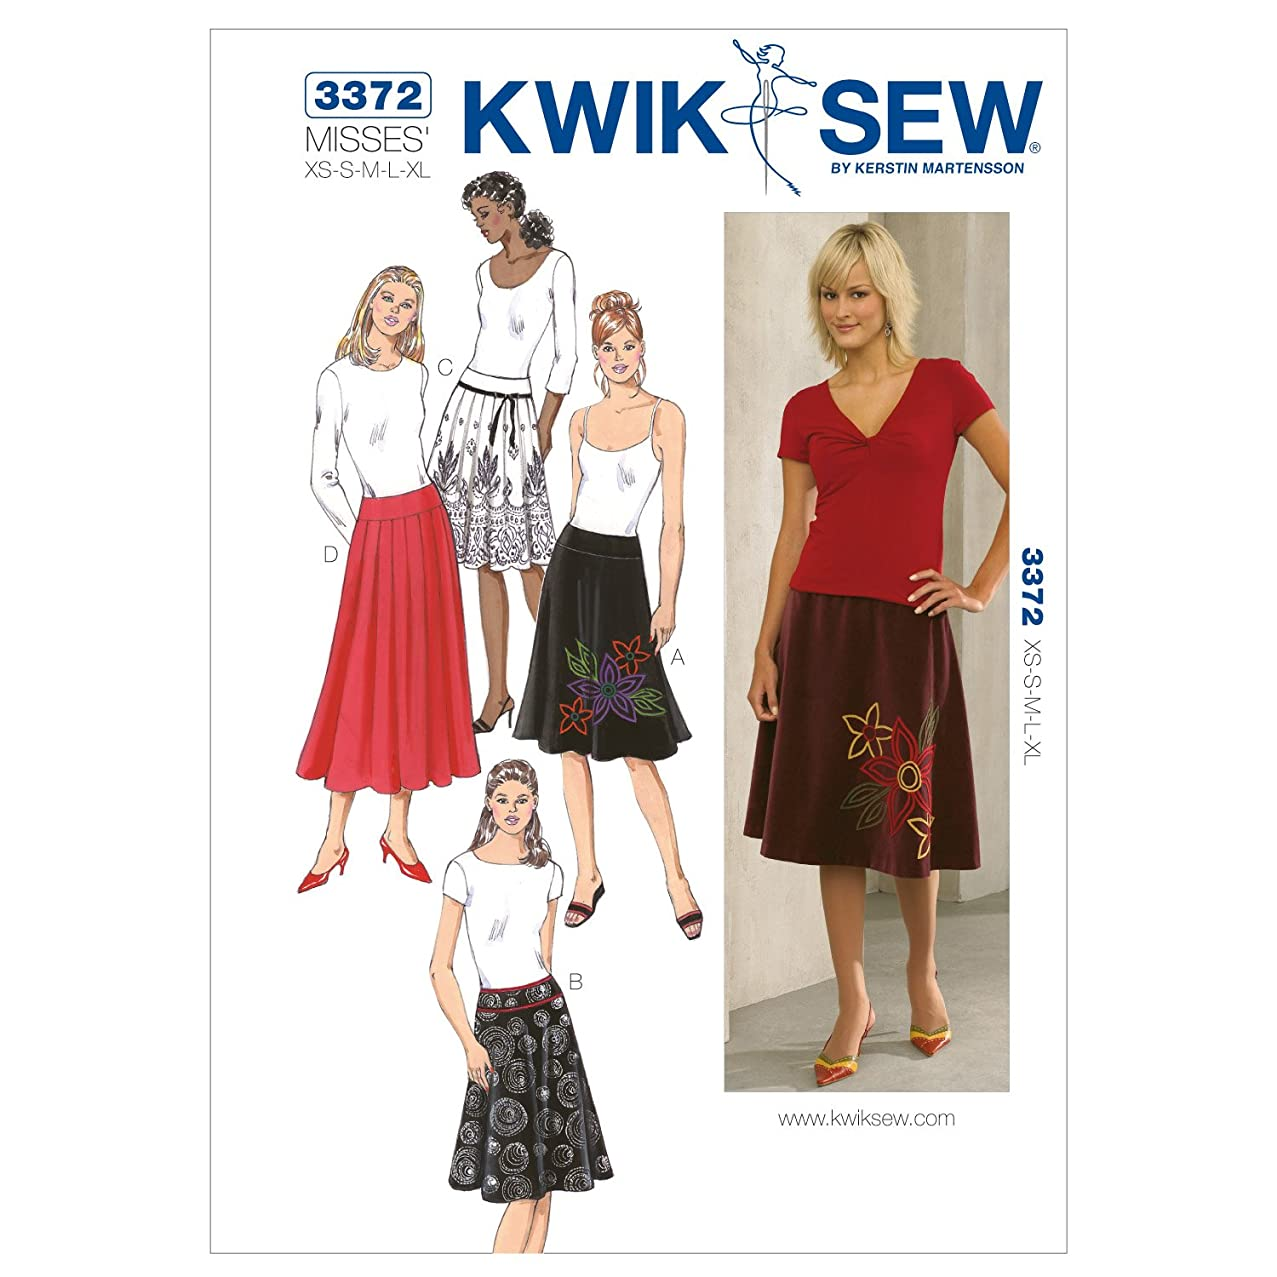 Kwik Sew K3372 Skirts Sewing Pattern, Size XS-S-M-L-XL